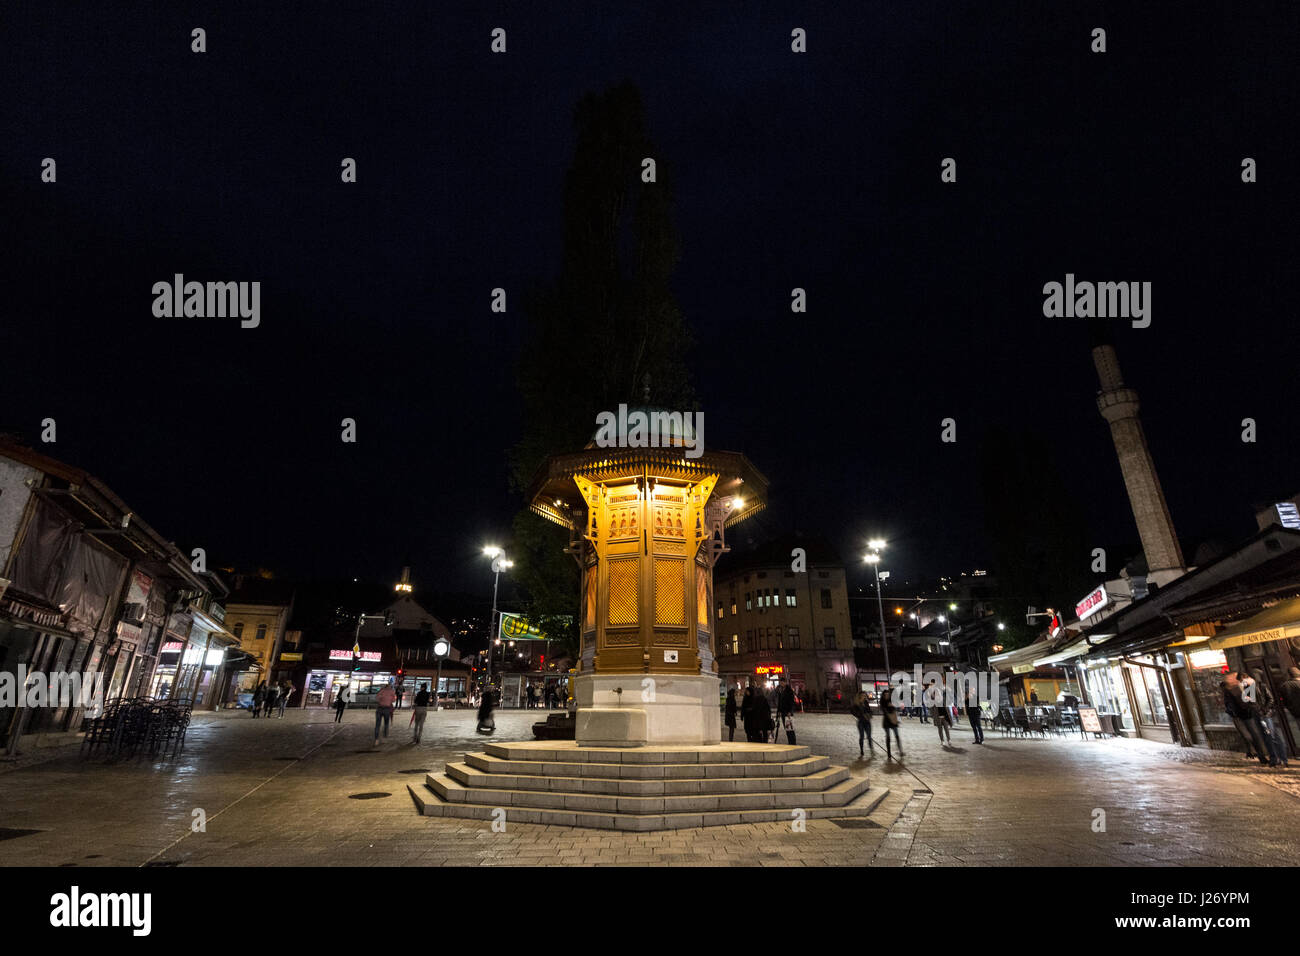 SARAJEVO, BOSNIA HERZEGOVINA - APRIL 16, 2017: Sebilj fountain, on Bacarsija district,  at night. This fountain - Stock Image